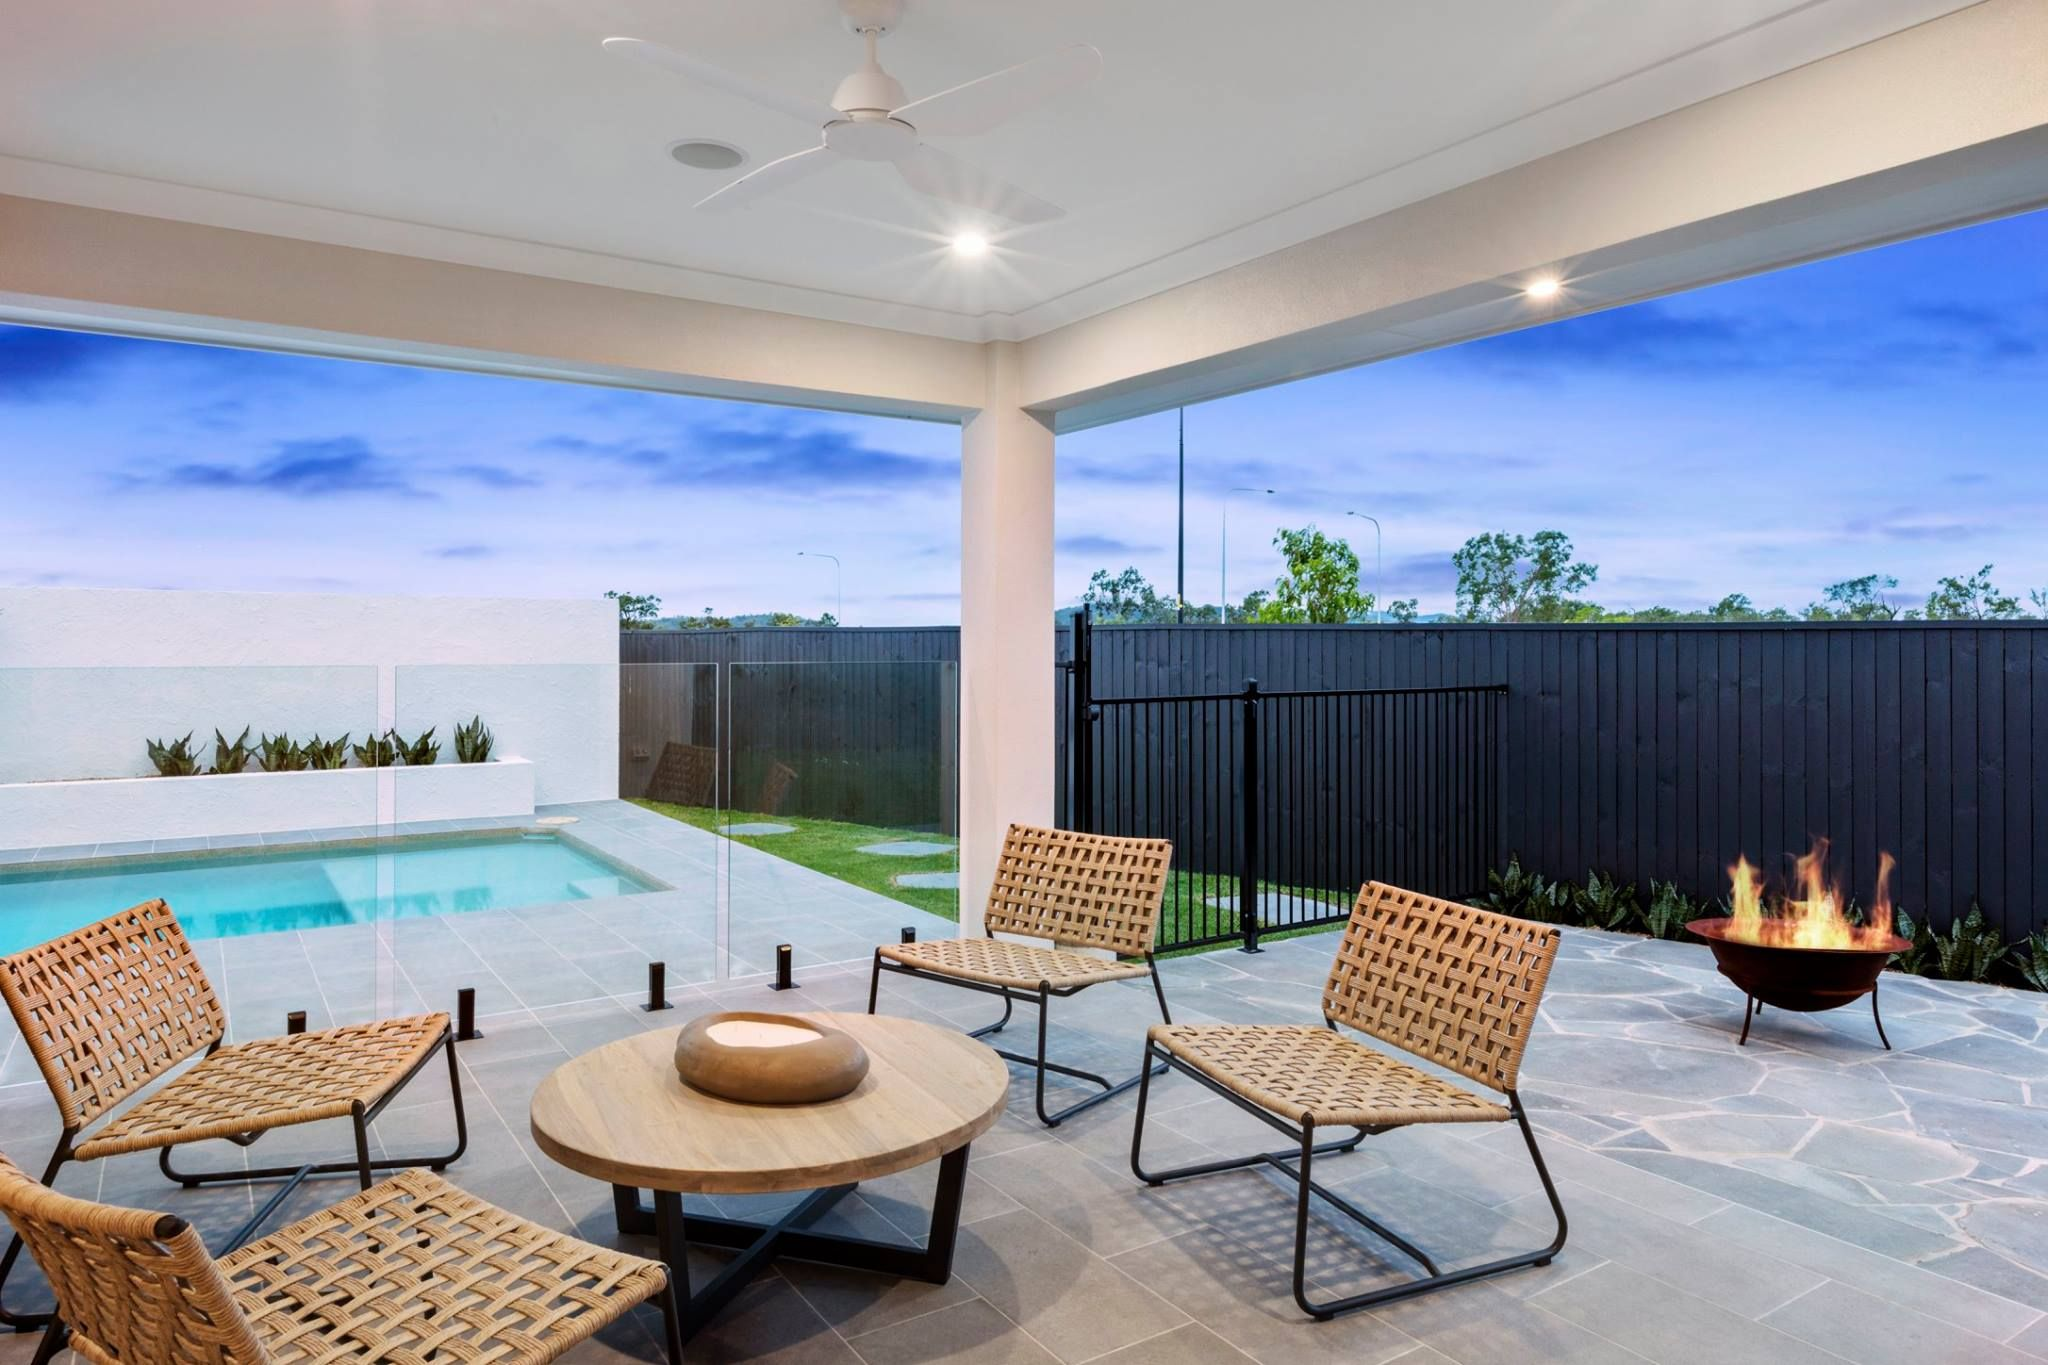 You'll be spending all your time outside with this G.J. Gardner Homes outside alfresco. With space to sit and relax, as well as the sleek look of a glass gated pool, this  backyard has it all.